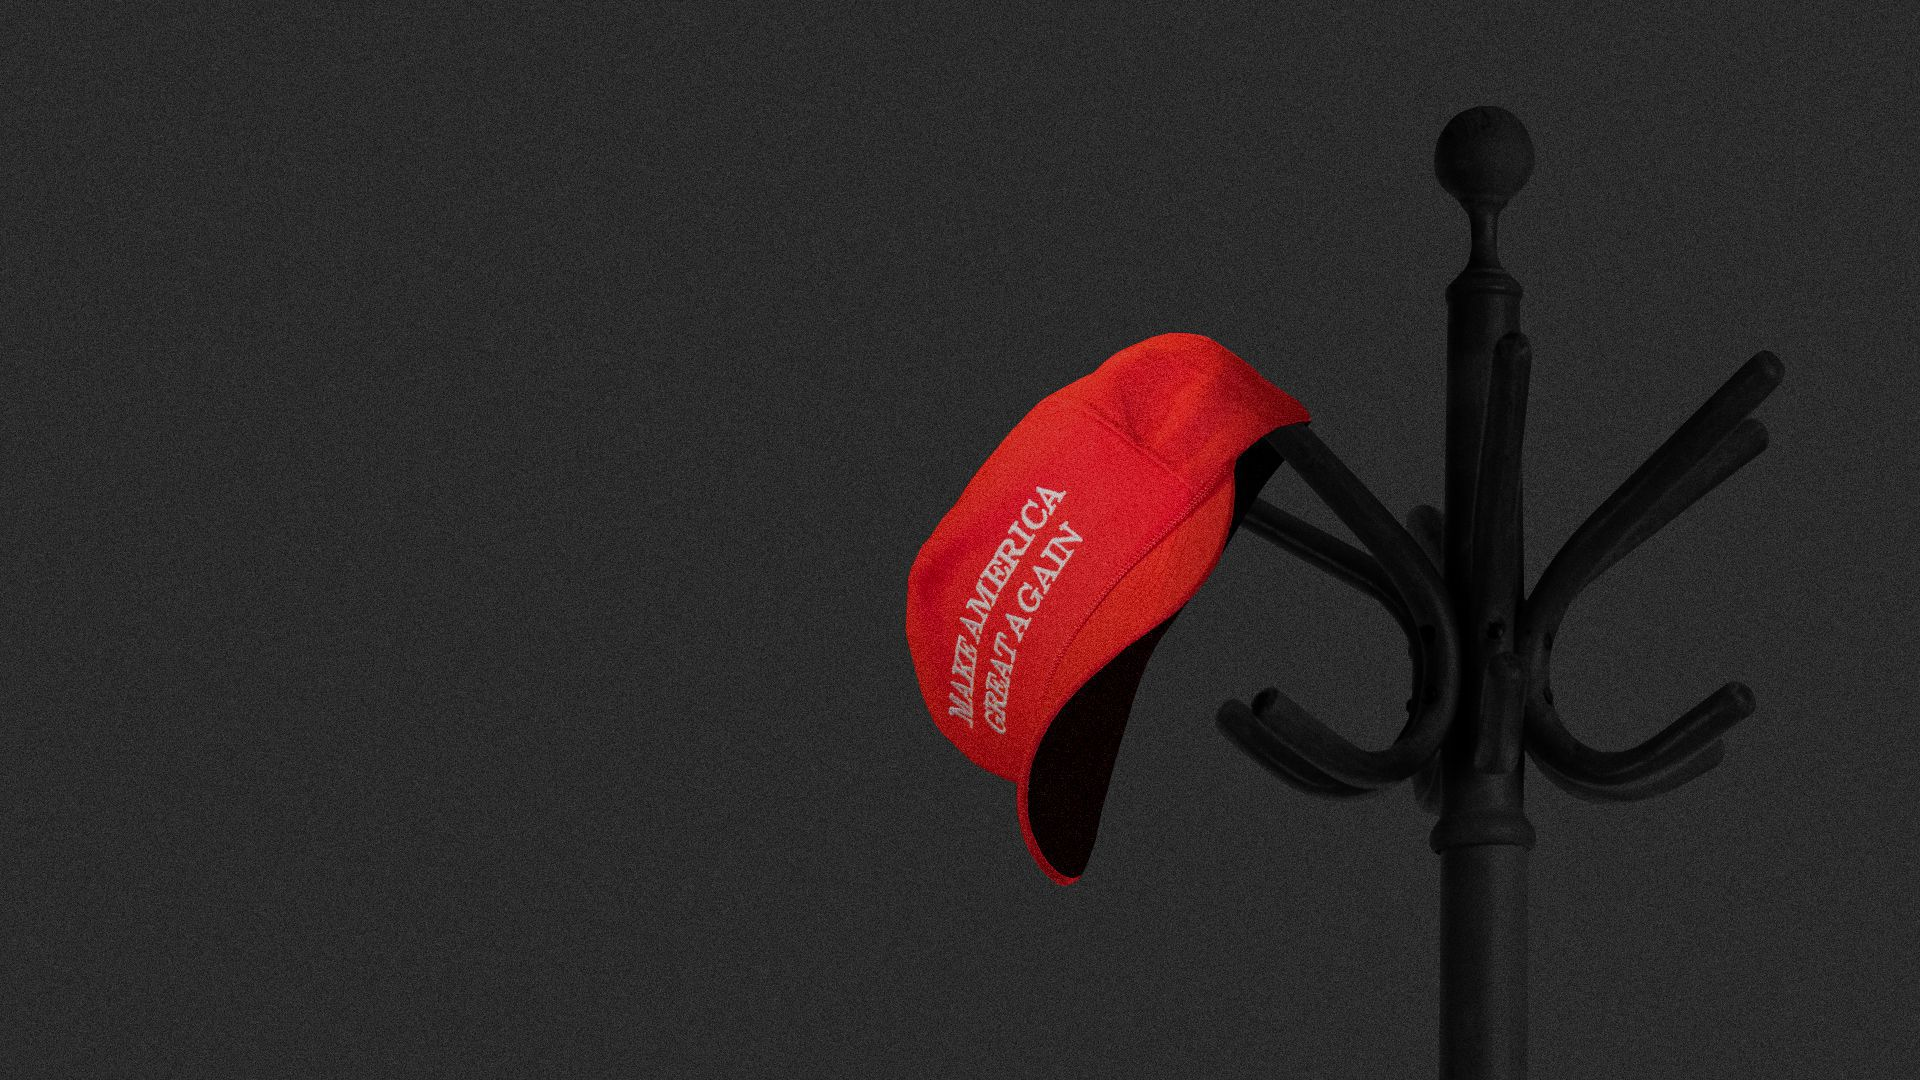 Axios illustration: Make America Great Again head hangs on an ominous coat rack